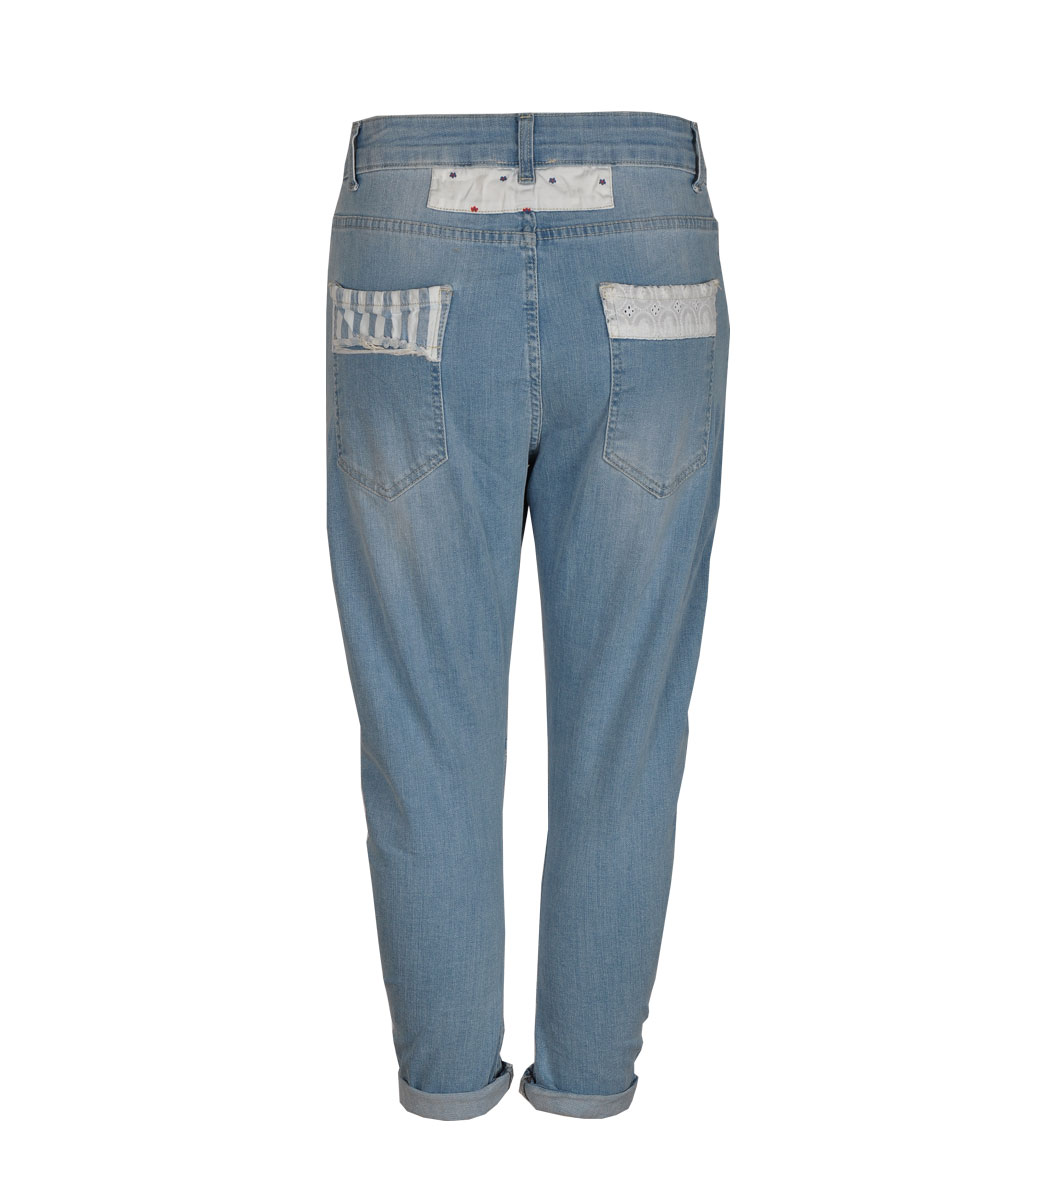 Checked jeans